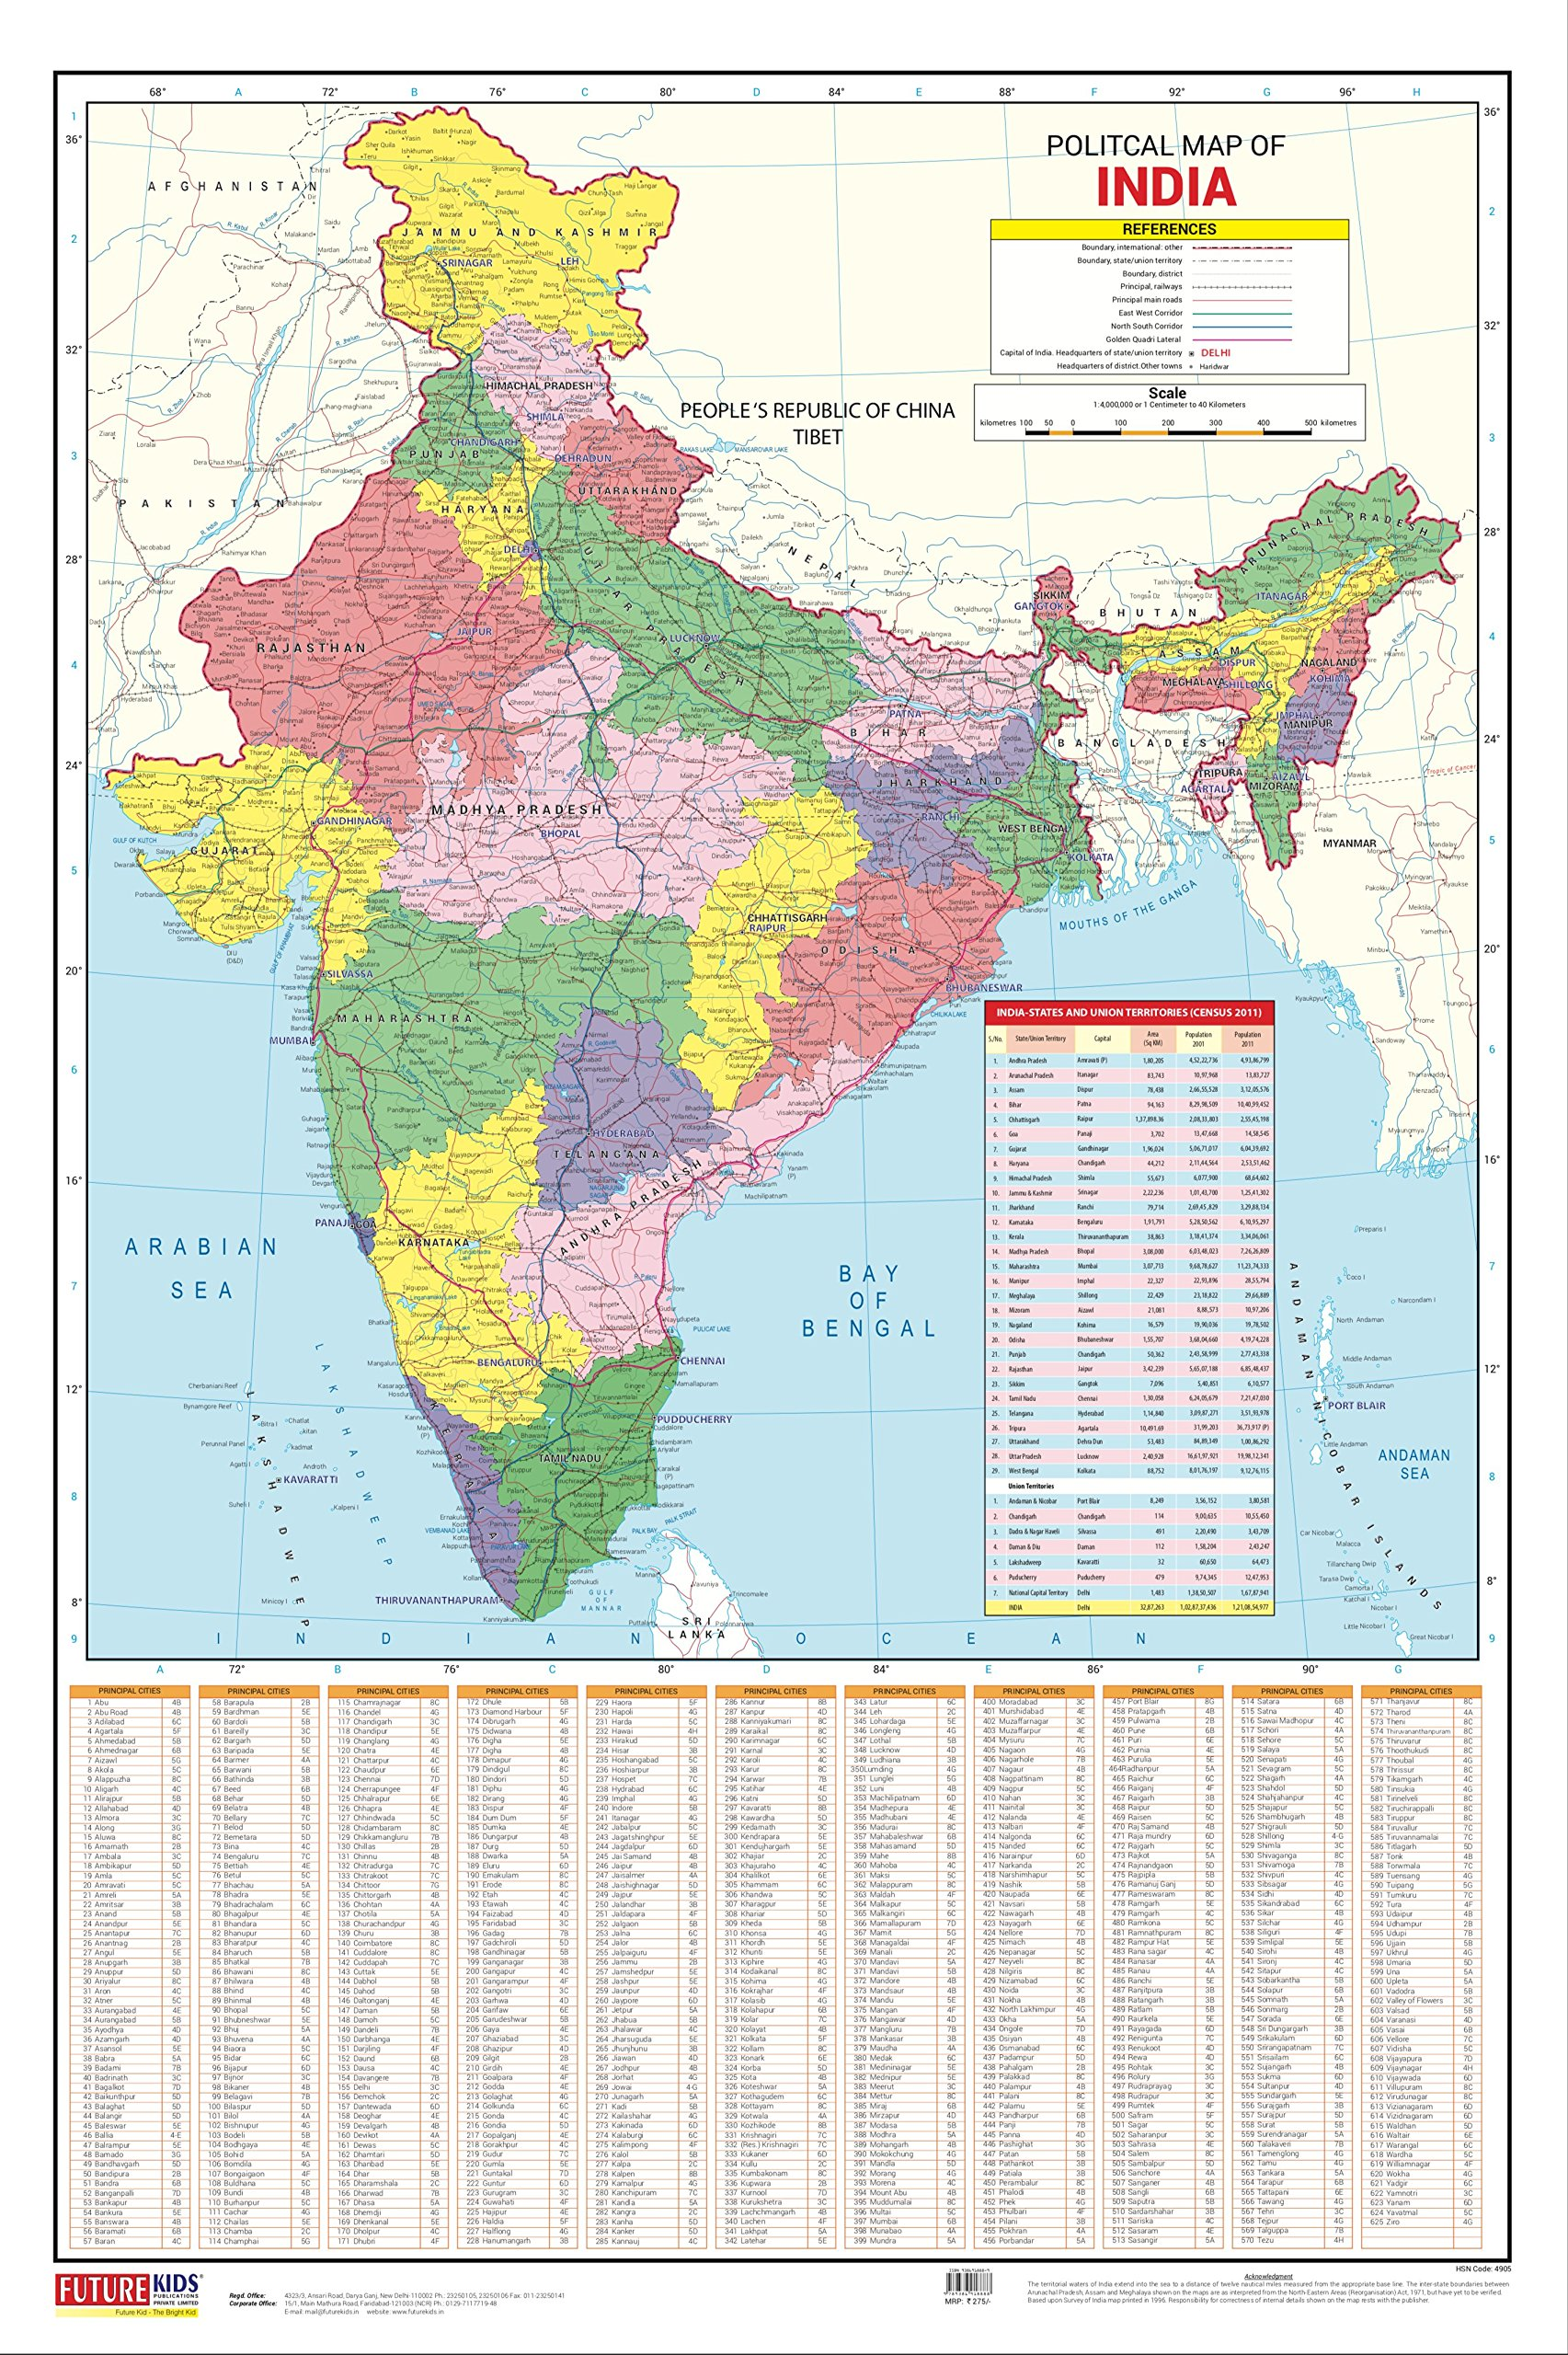 Ayodhya In India Map.India Map Political 50 8cm X 76 2cm Amazon In Future Kids